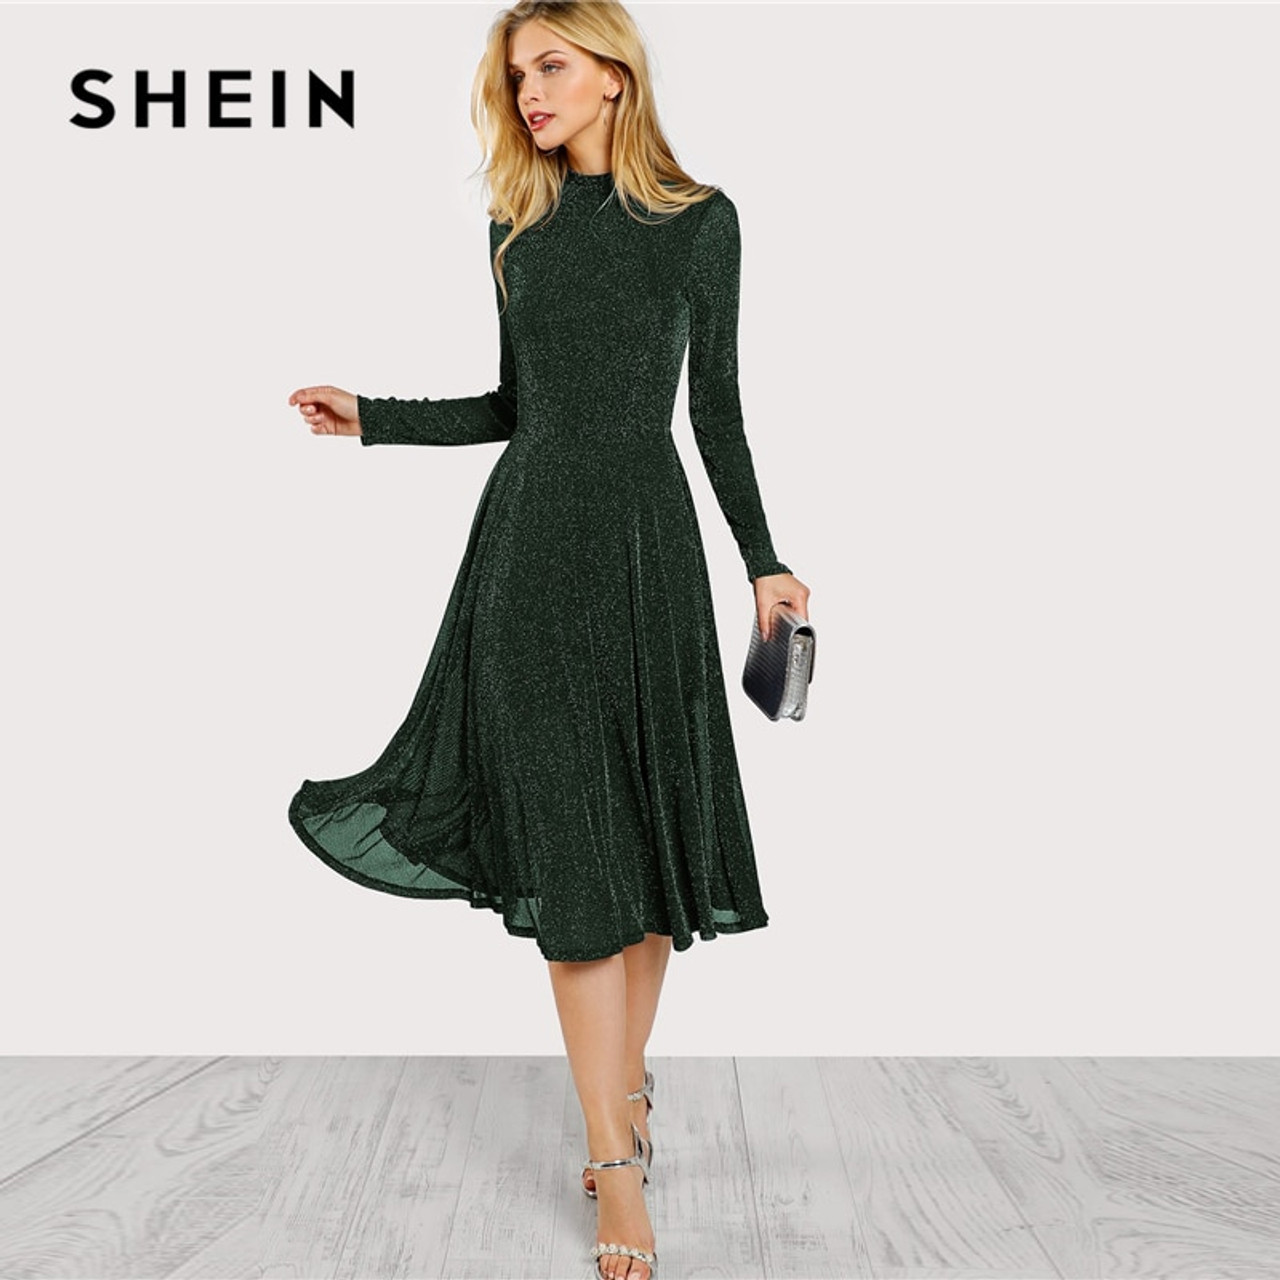 6a1f84867635e ... SHEIN Green Elegant Party Mock Neck Glitter Button Fit And Flare Solid  Natural Waist Dress 2018 ...